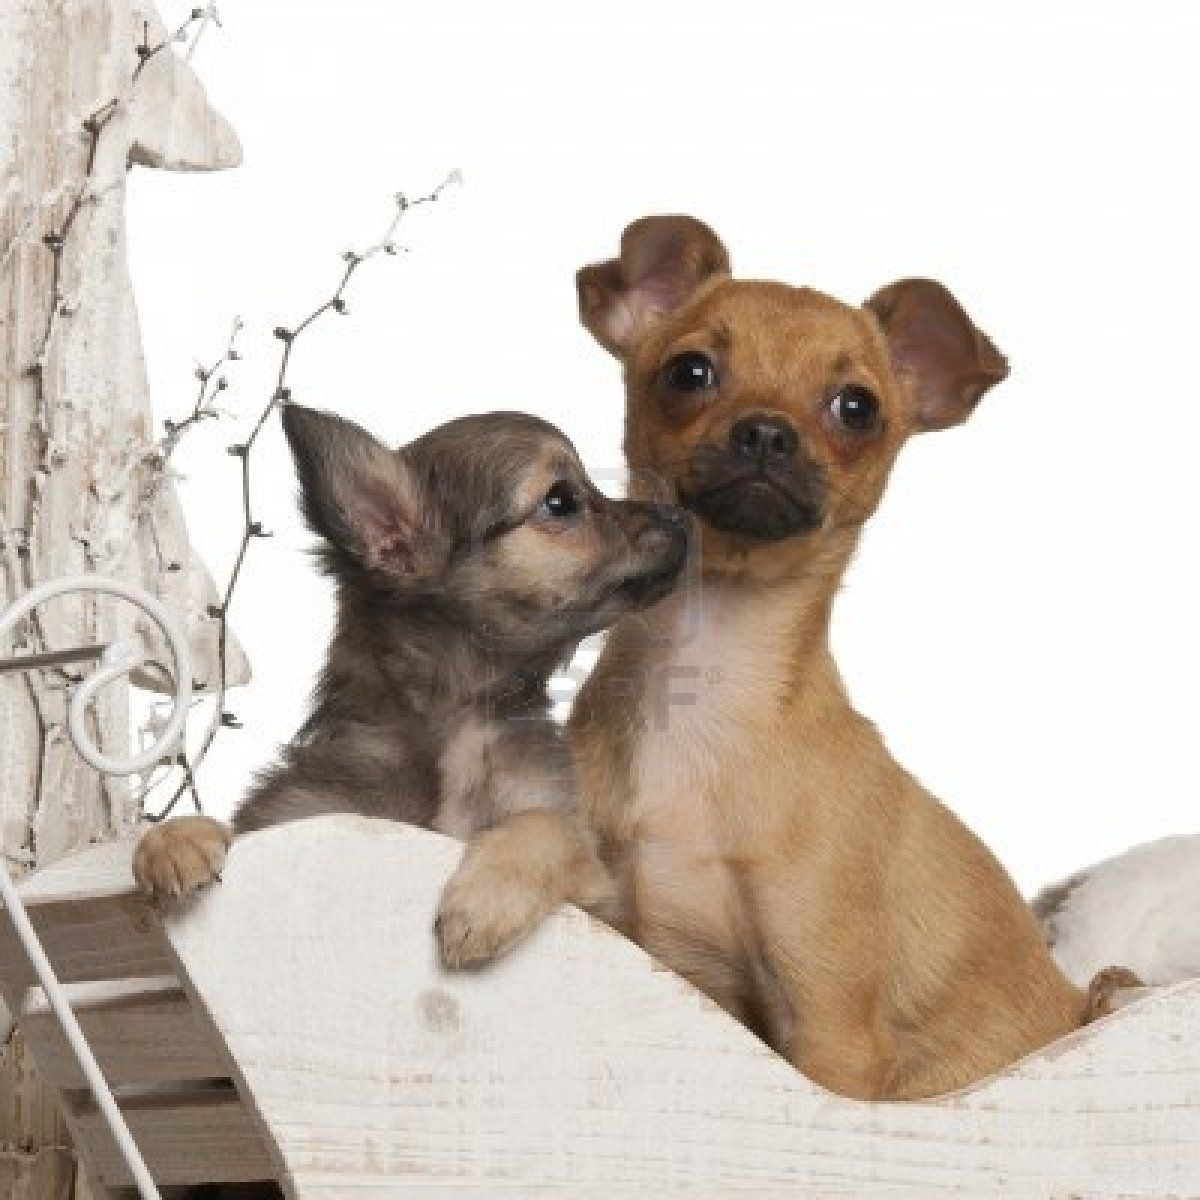 Stock Photo Chihuahua puppies, Teacup chihuahua puppies